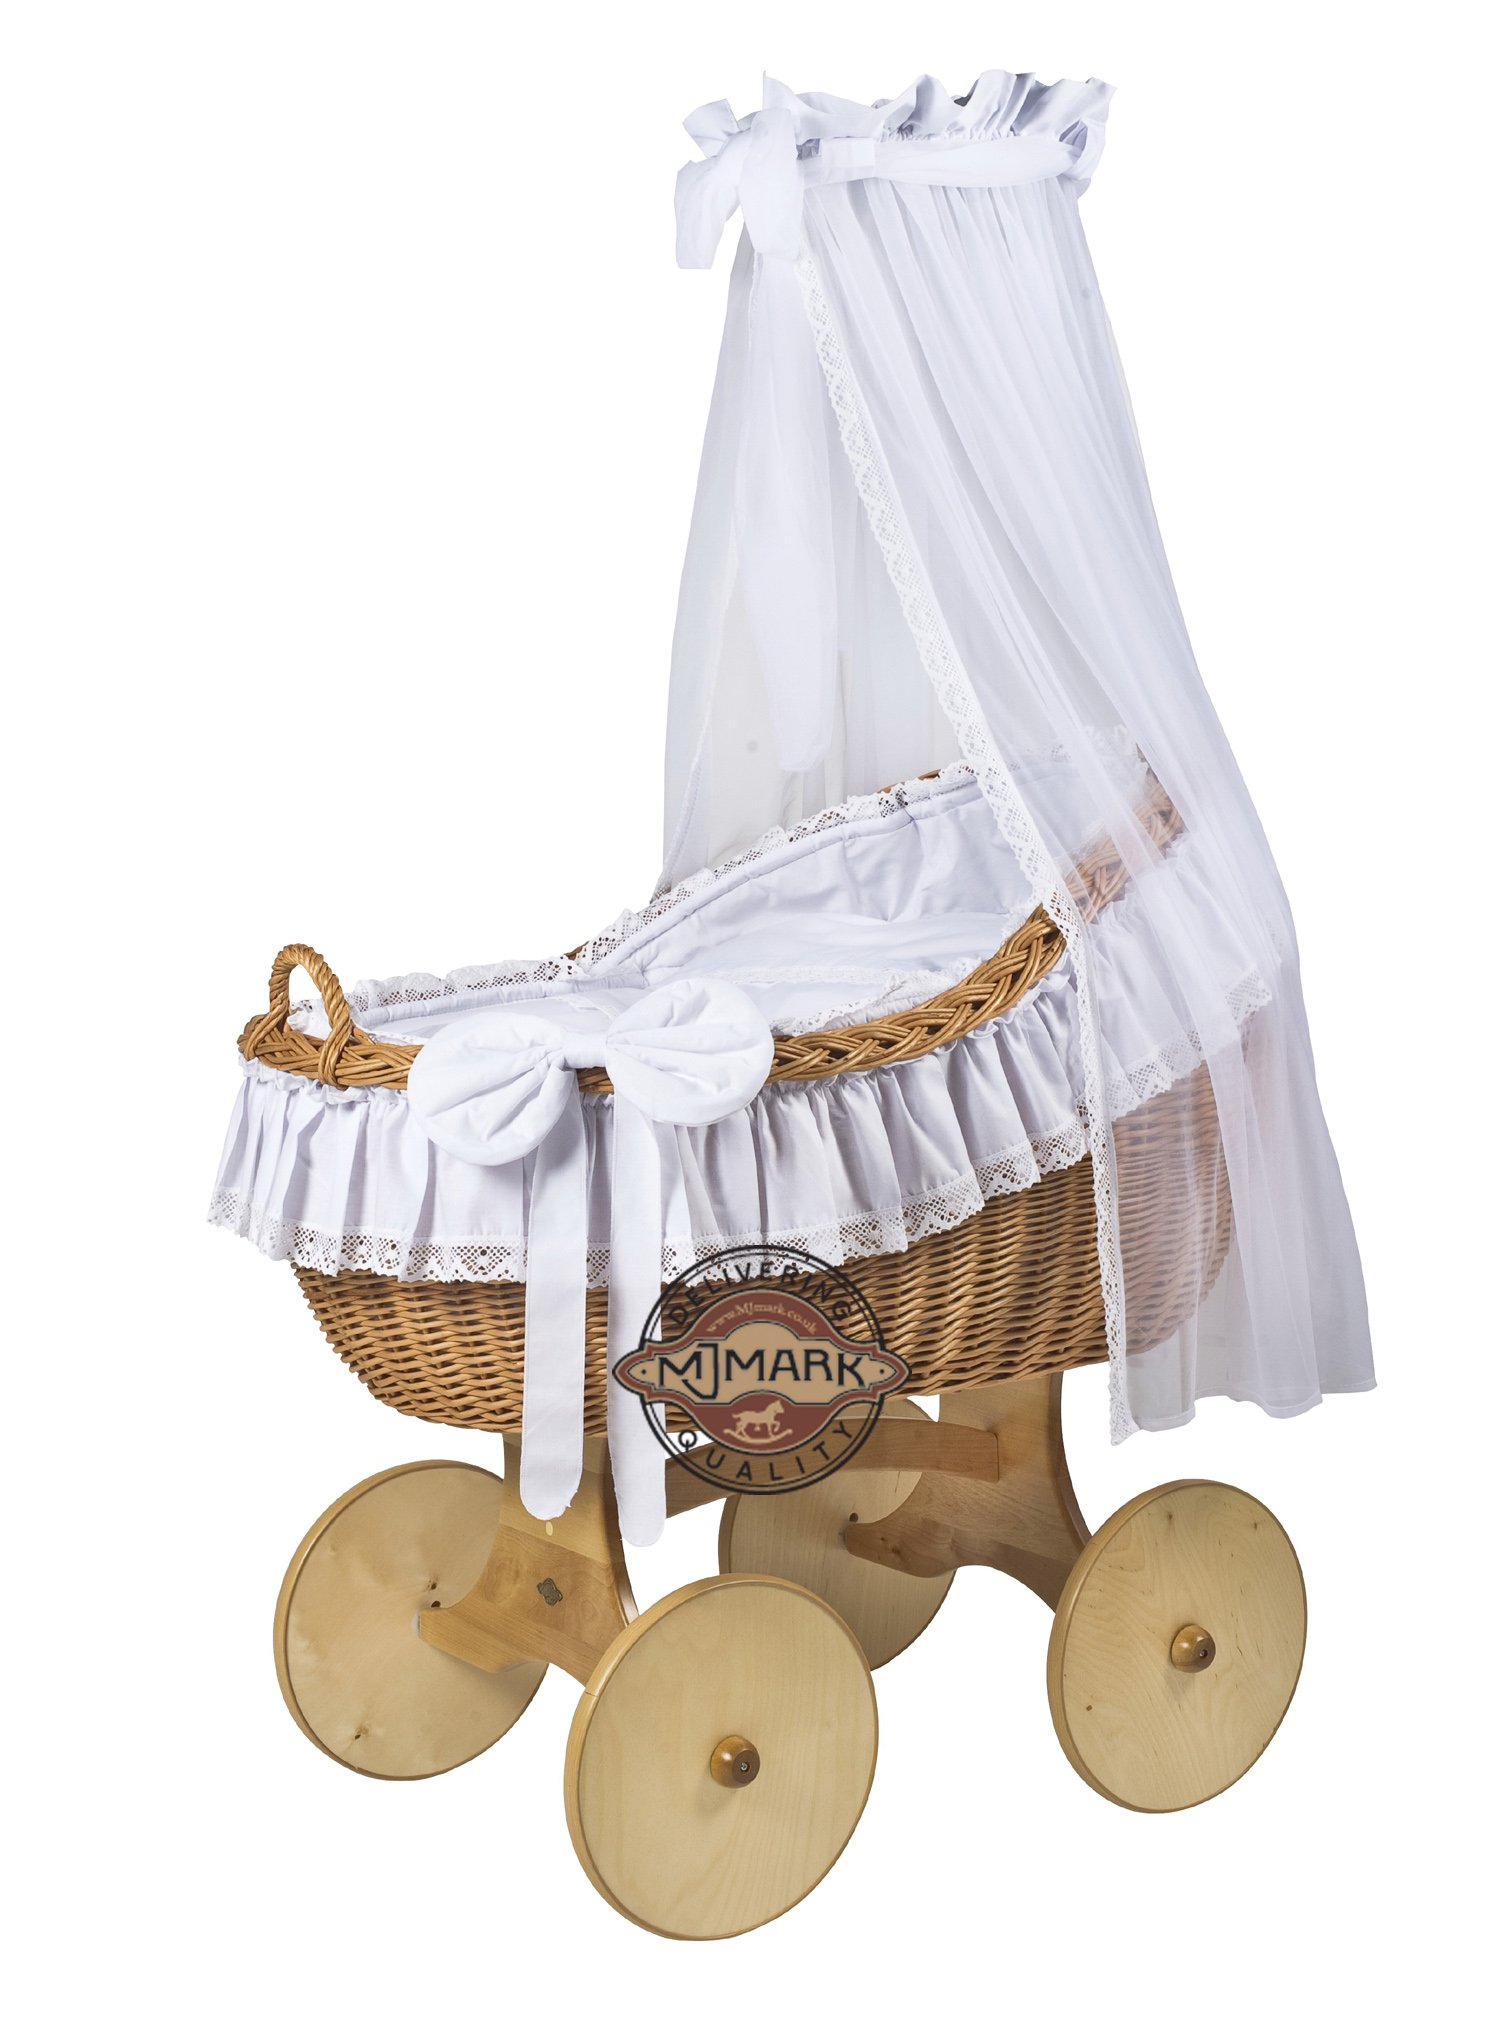 """Brand New Wicker Crib Moses Basket Cot """"BIANCA ANT WHITE"""" incl. Bedding, Mattress,Floor Standing Drape  Solid, Large wicker crib (MADE IN EUROPE) Handmade nature wicker basket Dimensions: L:90cm; W:60cm; H:85cm 1"""